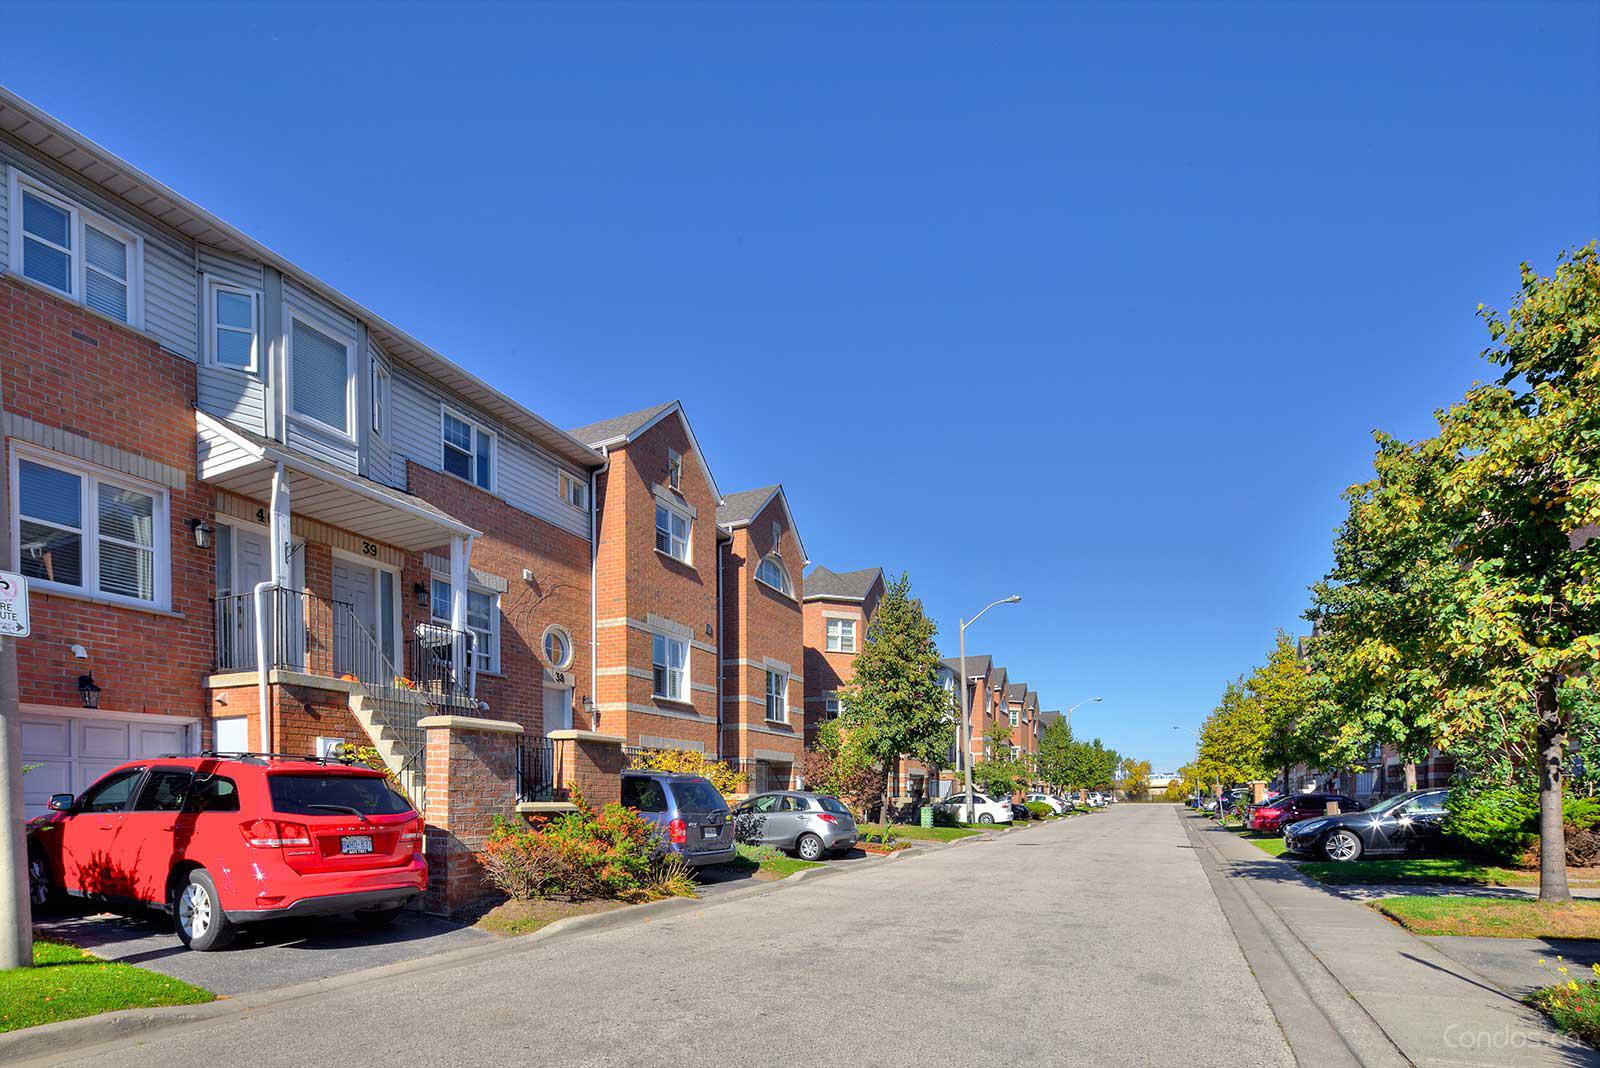 630 Evans Avenue Townhomes at 630 Evans Ave, Toronto 0